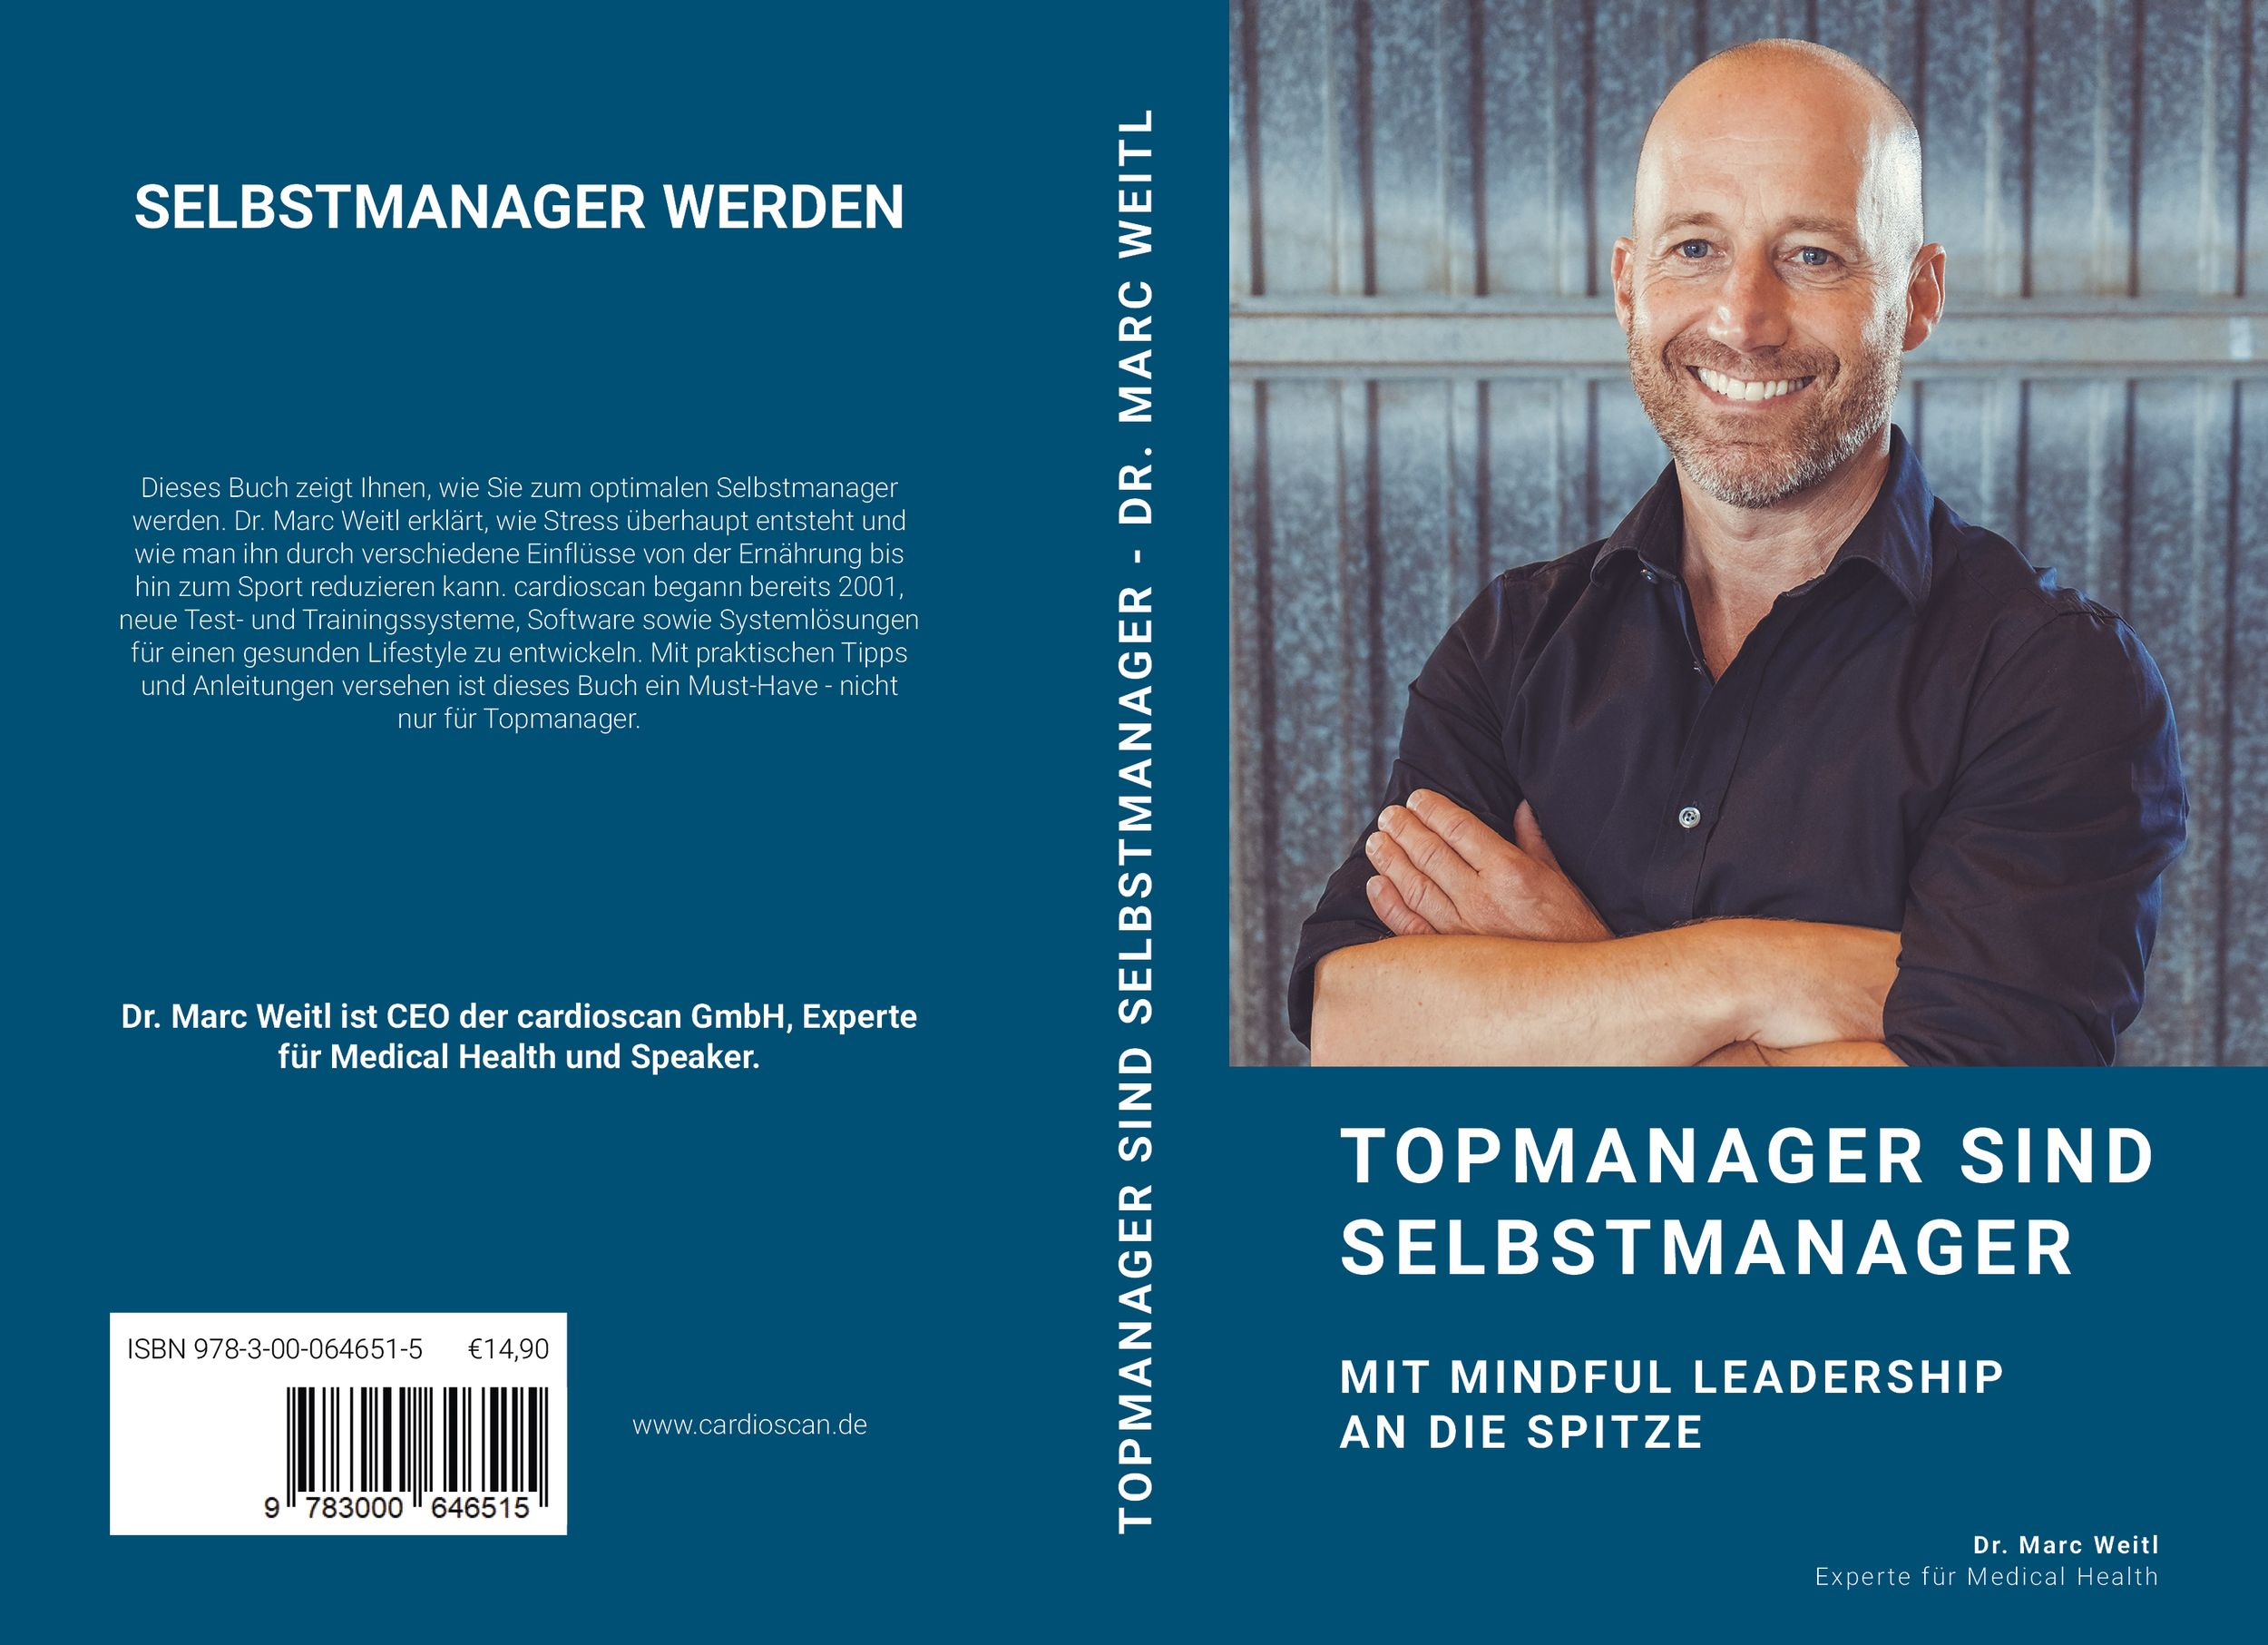 """""""Topmanager sind Selbstmanager – Mit Mindful Leadership an die Spitze"""" Dr. Marc Weitl, ISBN 978-3-00-064651-5, 14,90 Euro"""